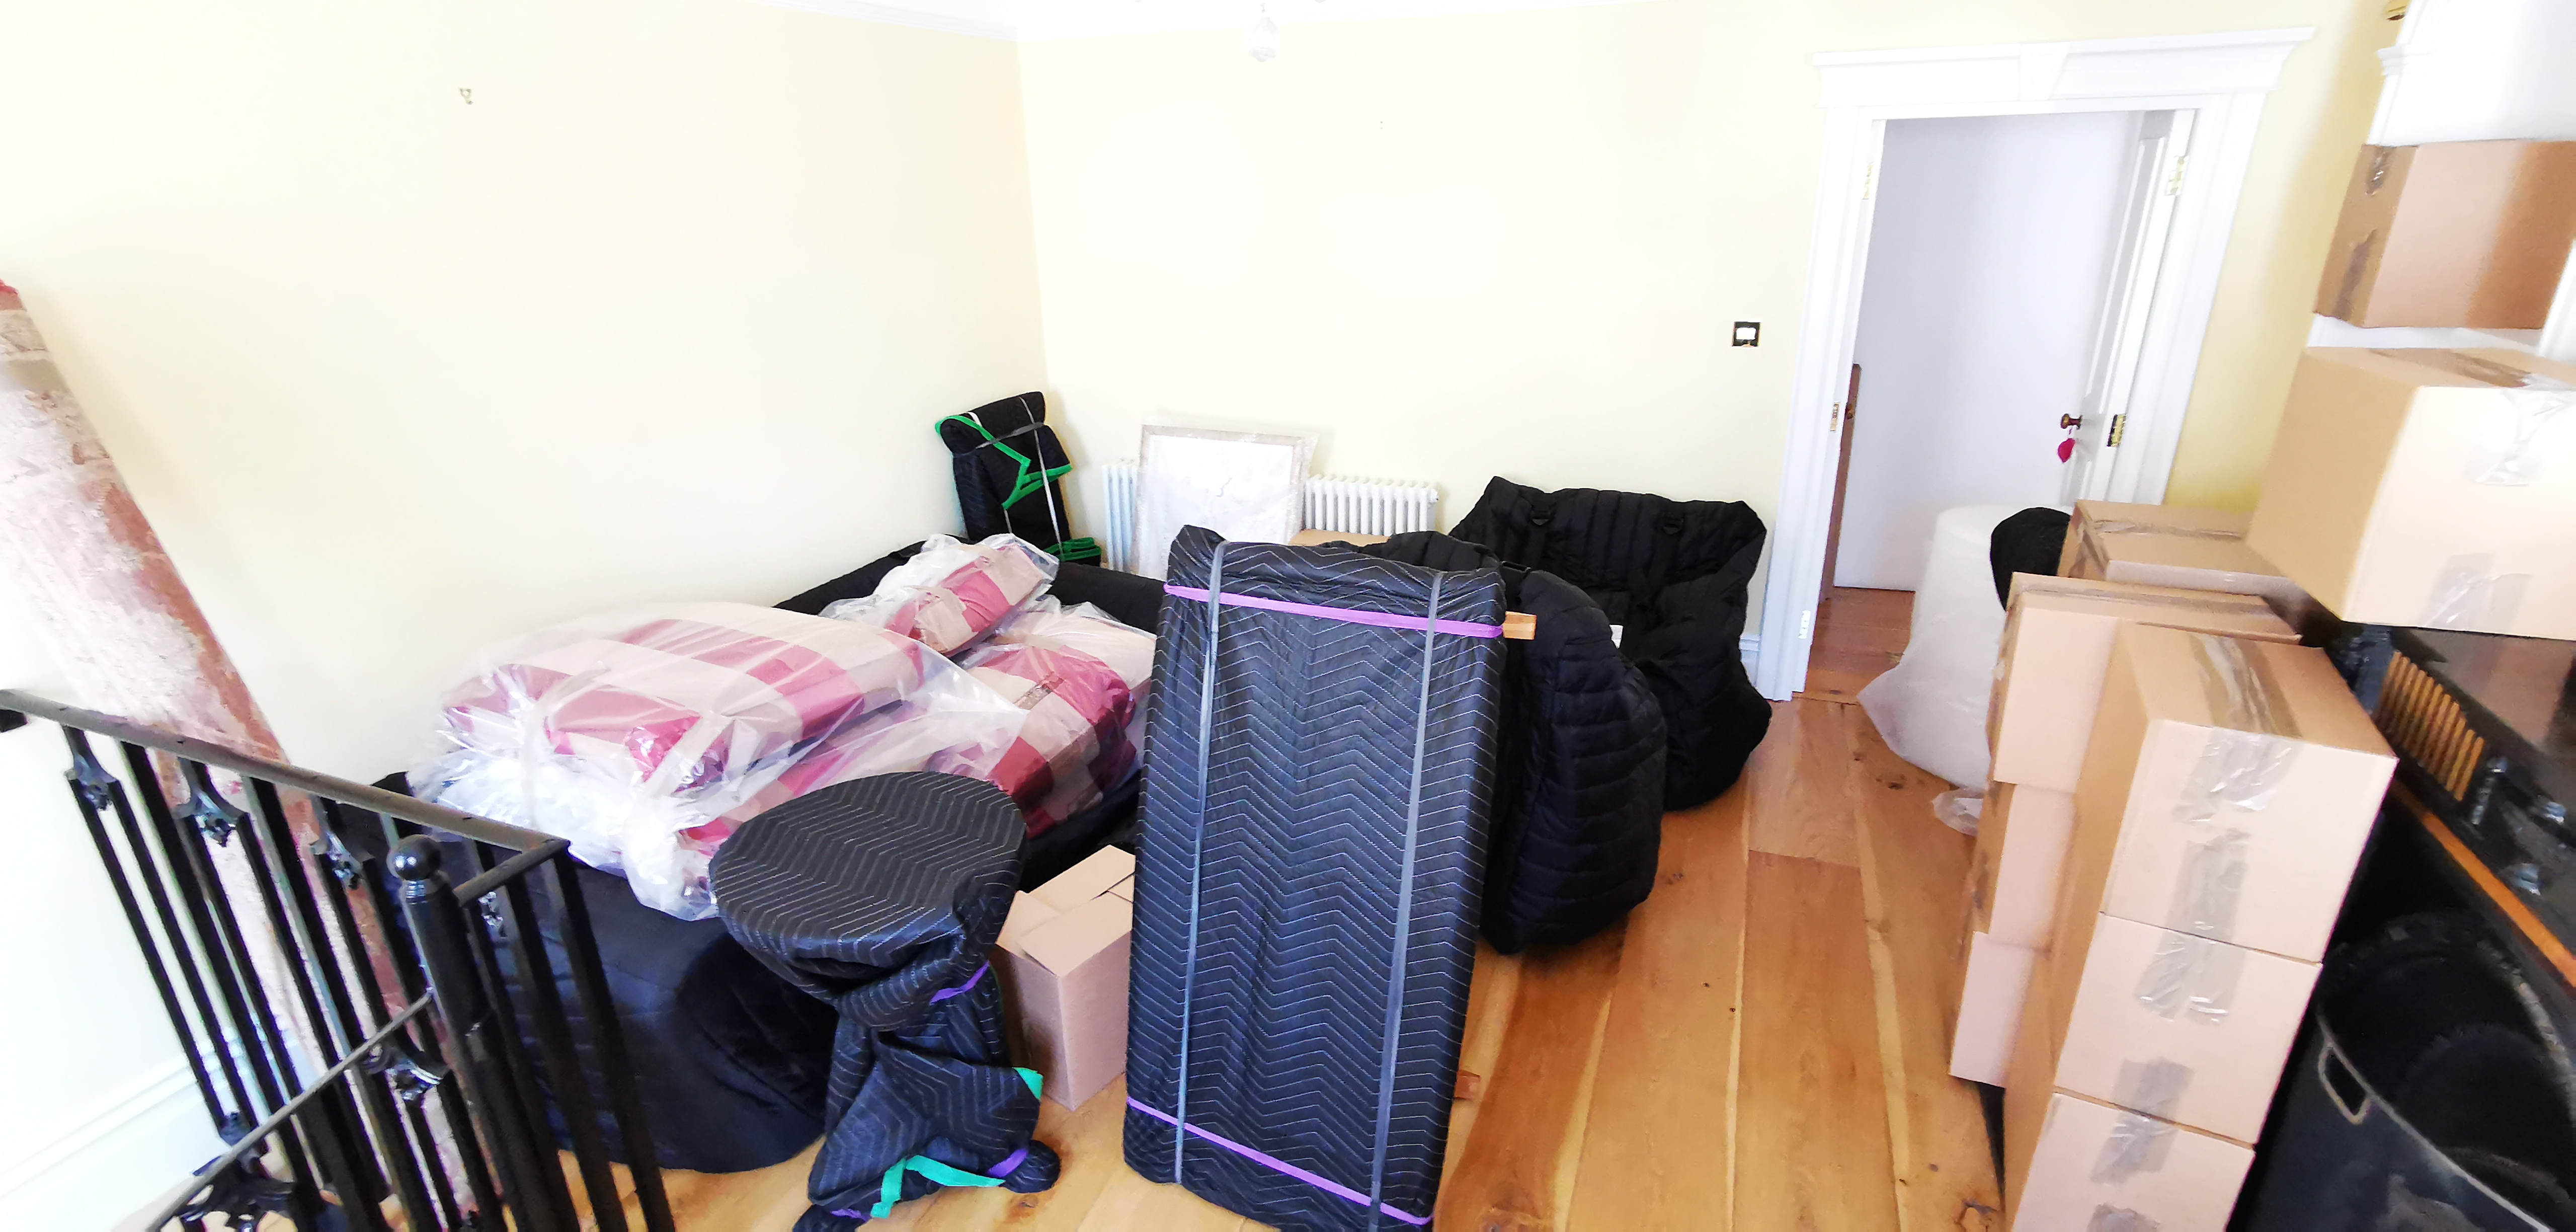 Packing services in Oxshott